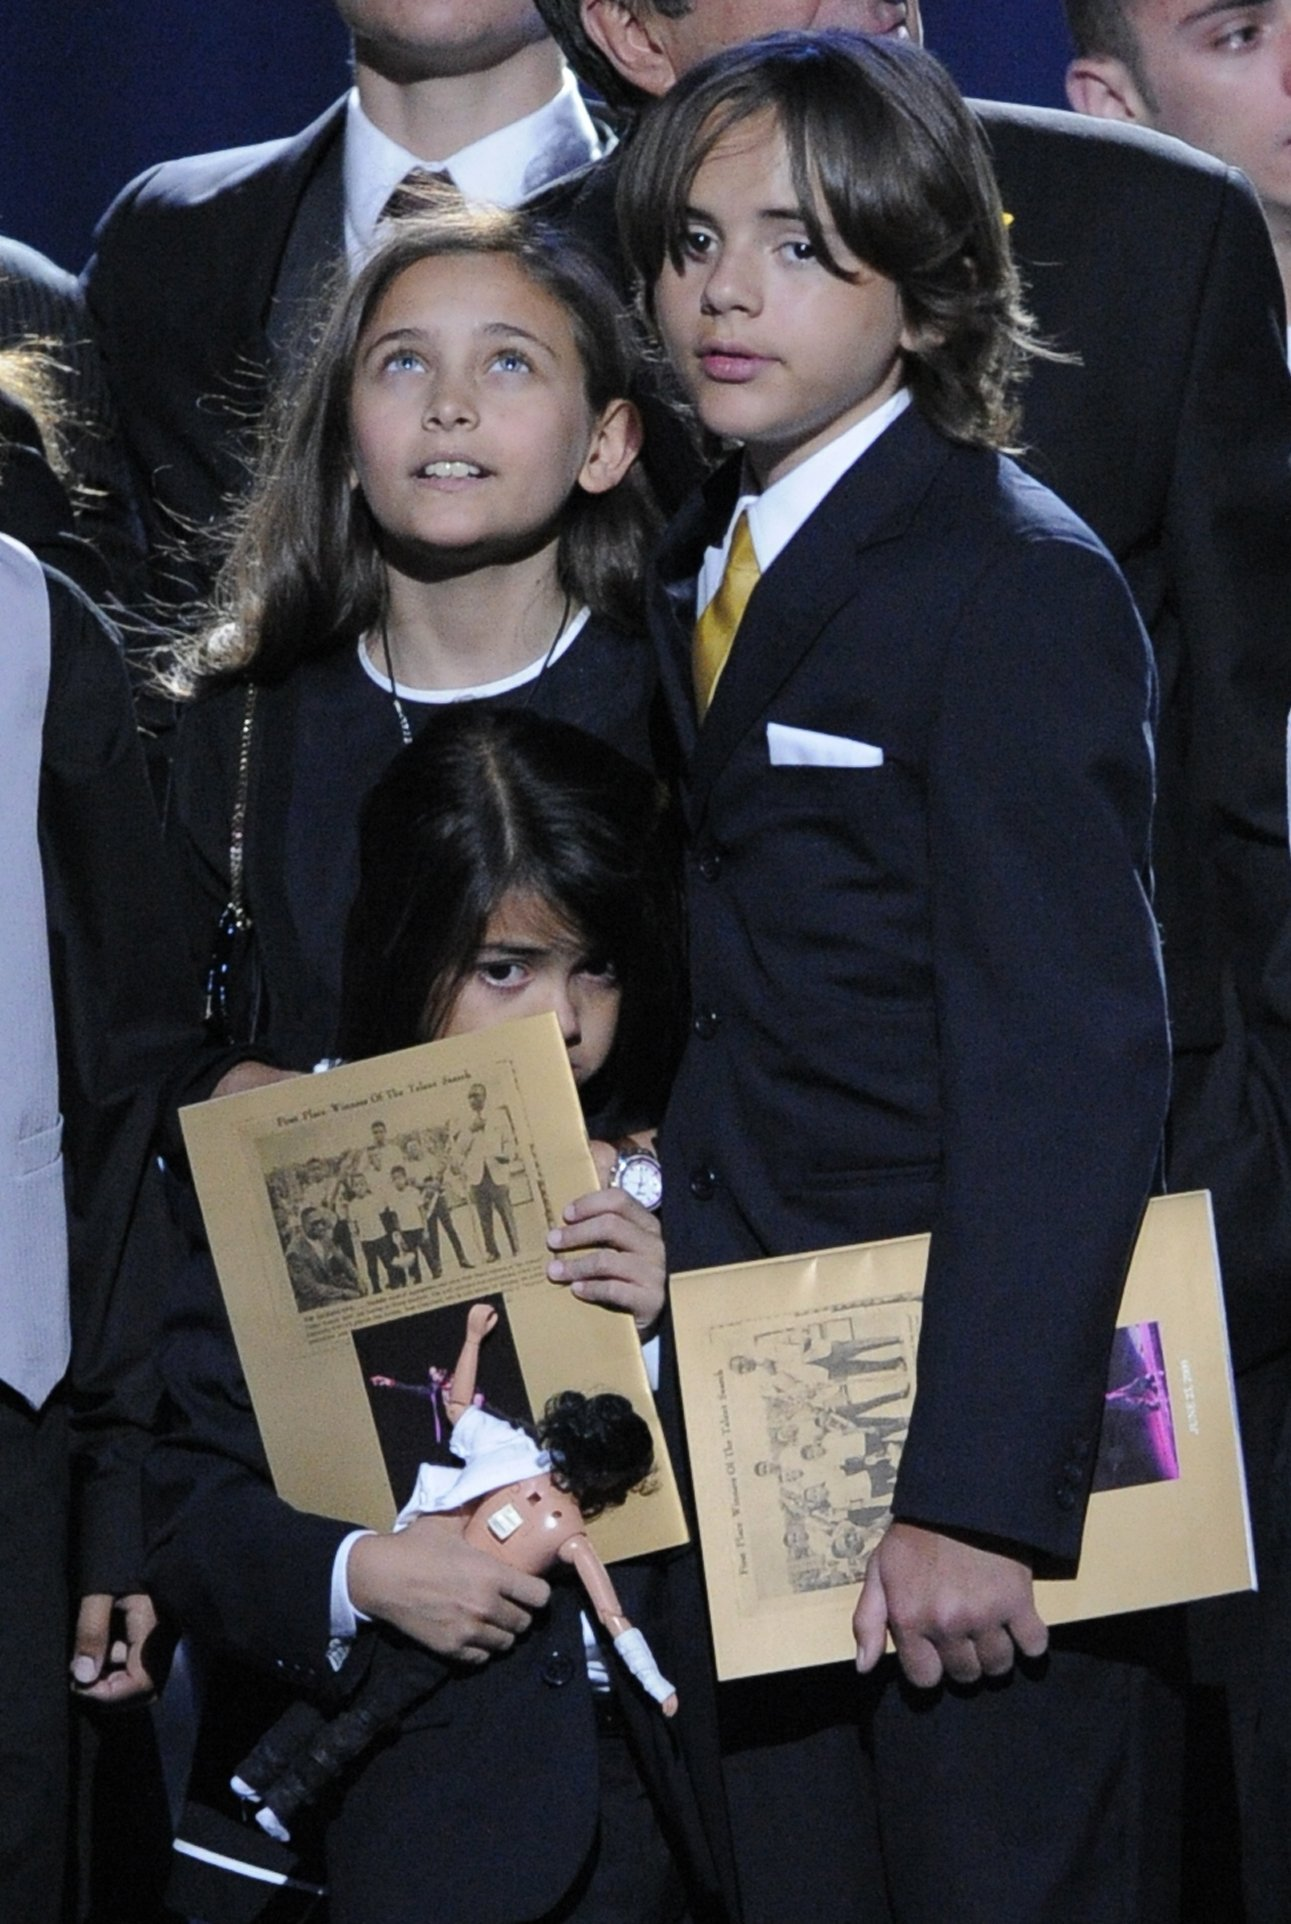 Paris, Prince and Bigi Jackson attend the memorial of their father Michael Jackson in 2009 | Photo: Getty Images